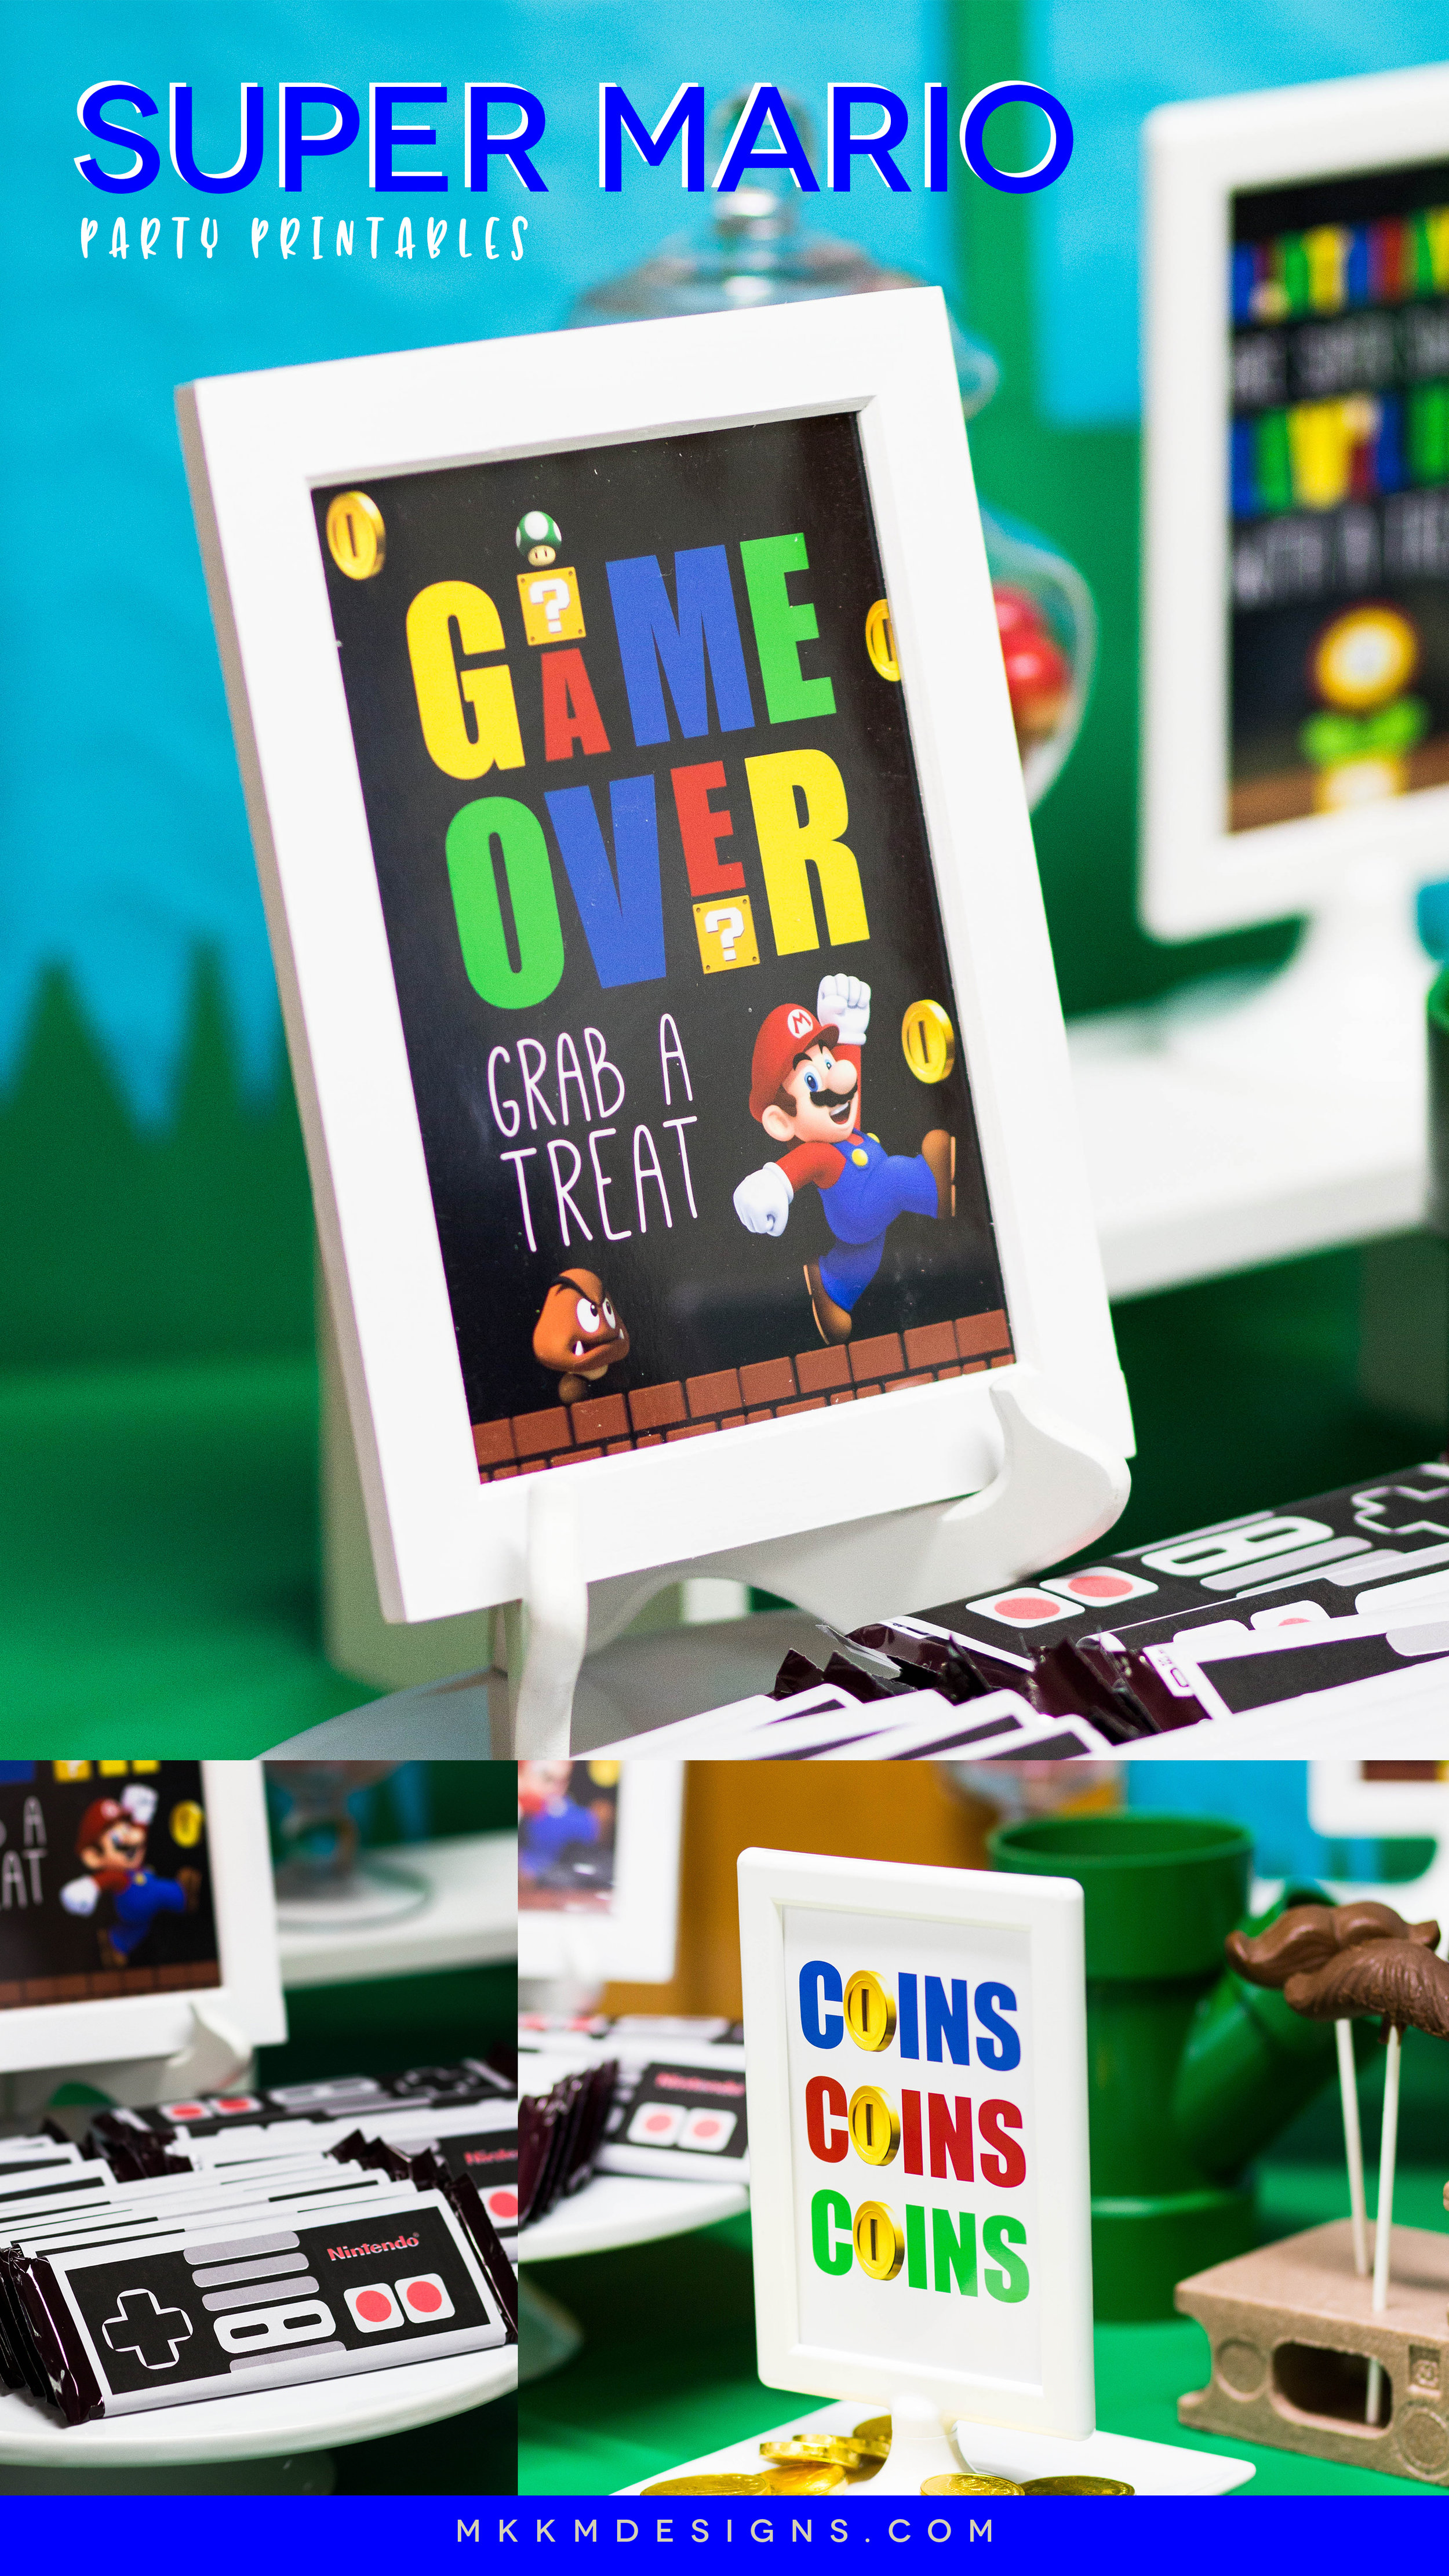 Super Mario Party Printables from mkkmdesigns. Free printable party signs and more on the shopmkkm blog.